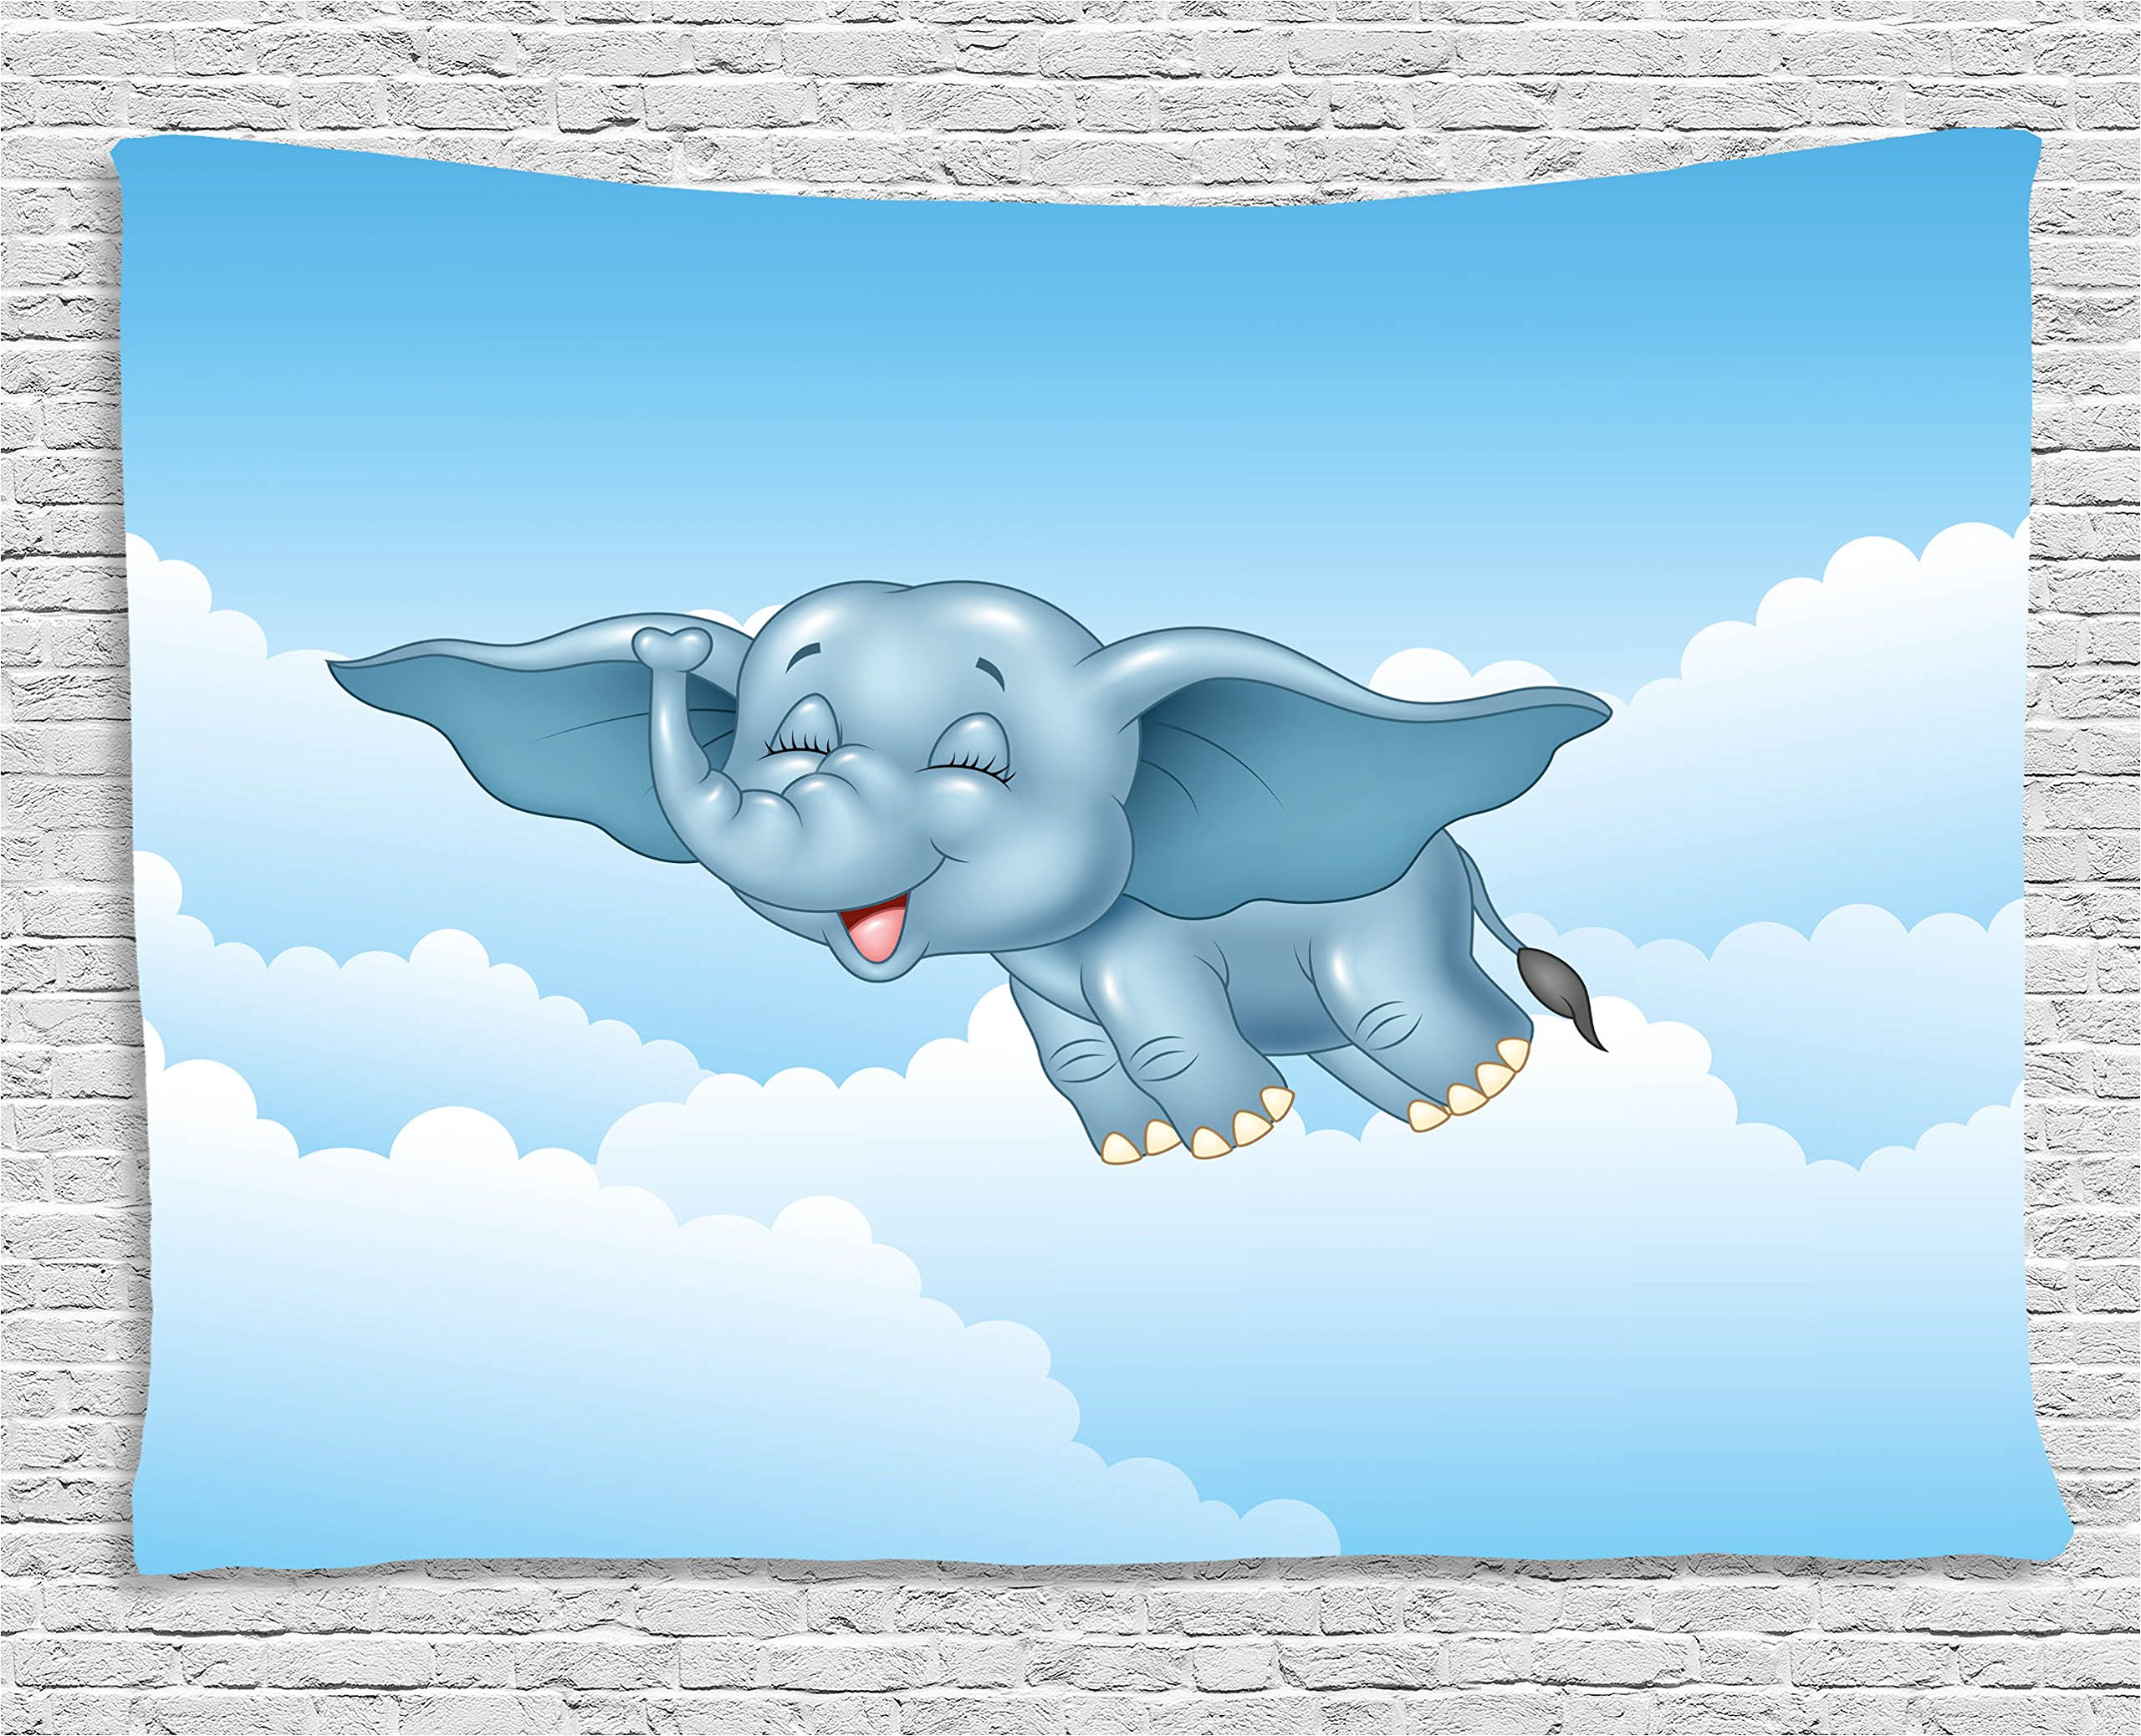 Ambesonne Animal Tapestry, Cute Baby Flying Elephant Clouds Comic Humor Happiness Kids Caricature Illustration, Wall Hanging for Bedroom Living Room Dorm, 80 W X 60 L inches, Light Blue